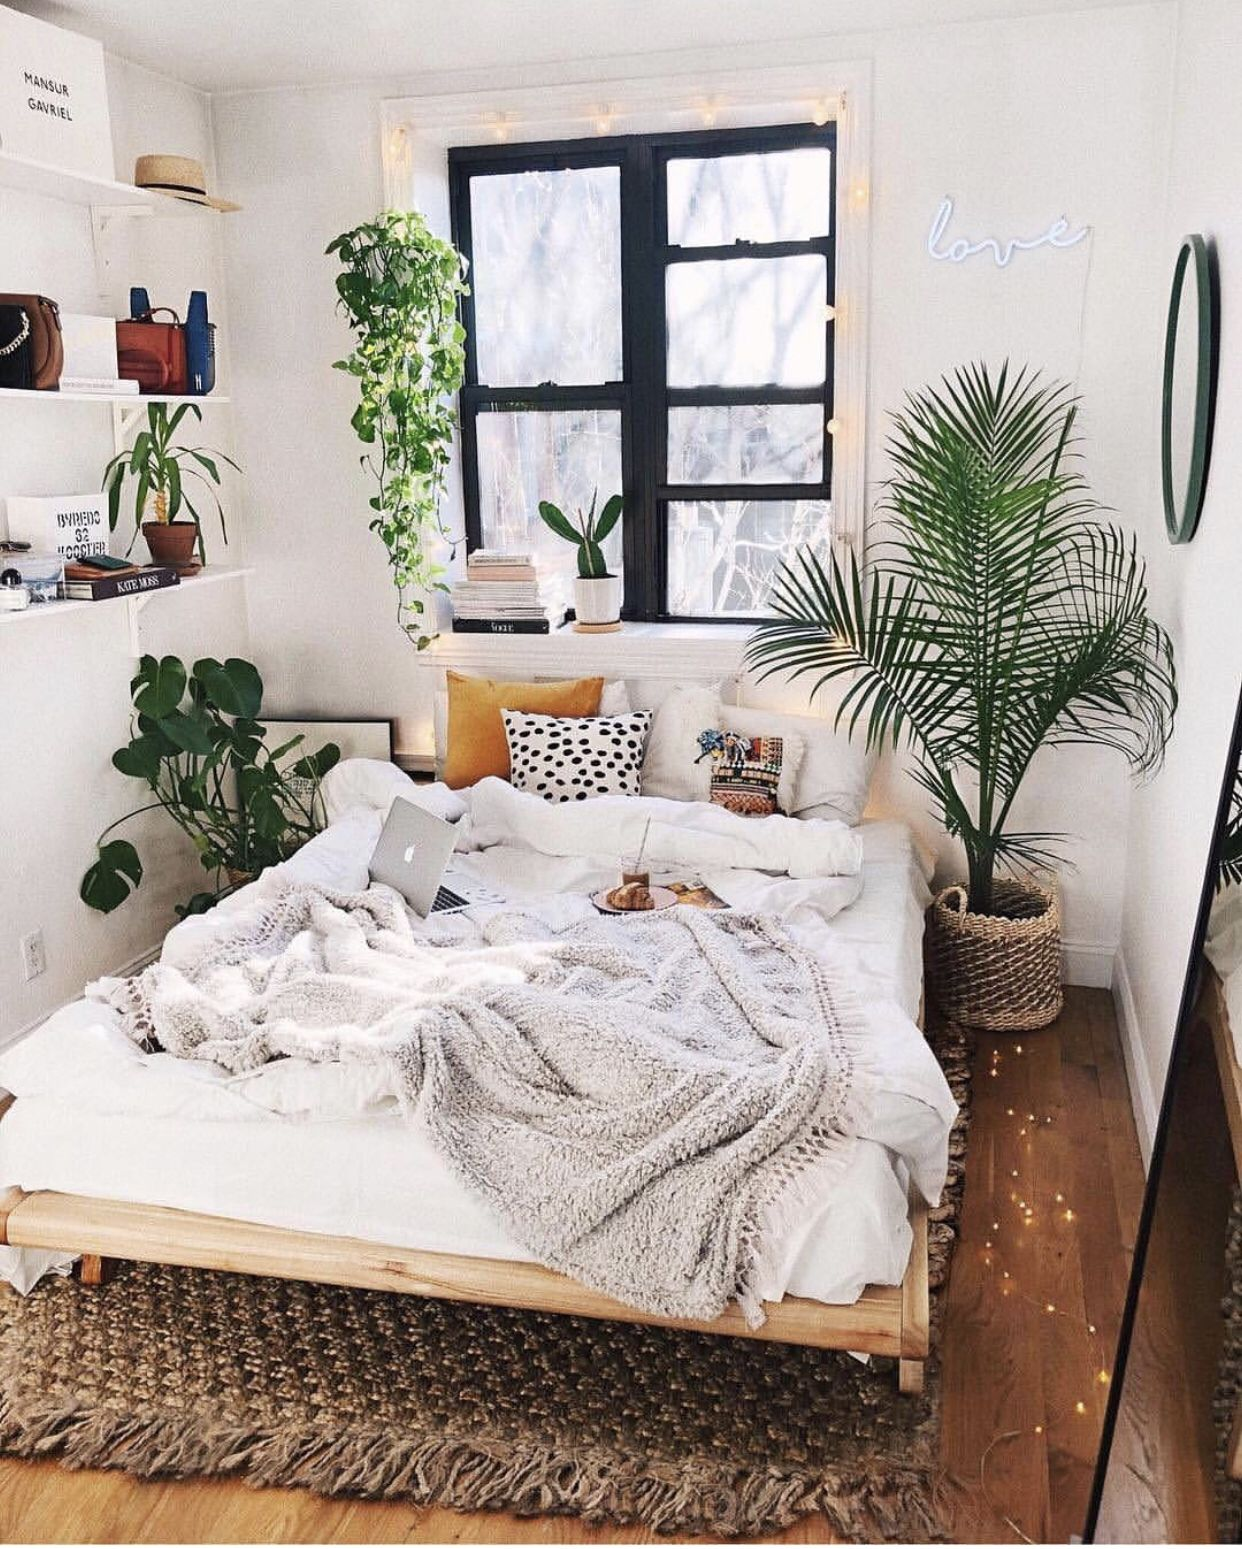 Minimalist Bedroom With Plants Bedroom Decor For Couples Small Small Bedroom Decor Bedroom Decor For Couples